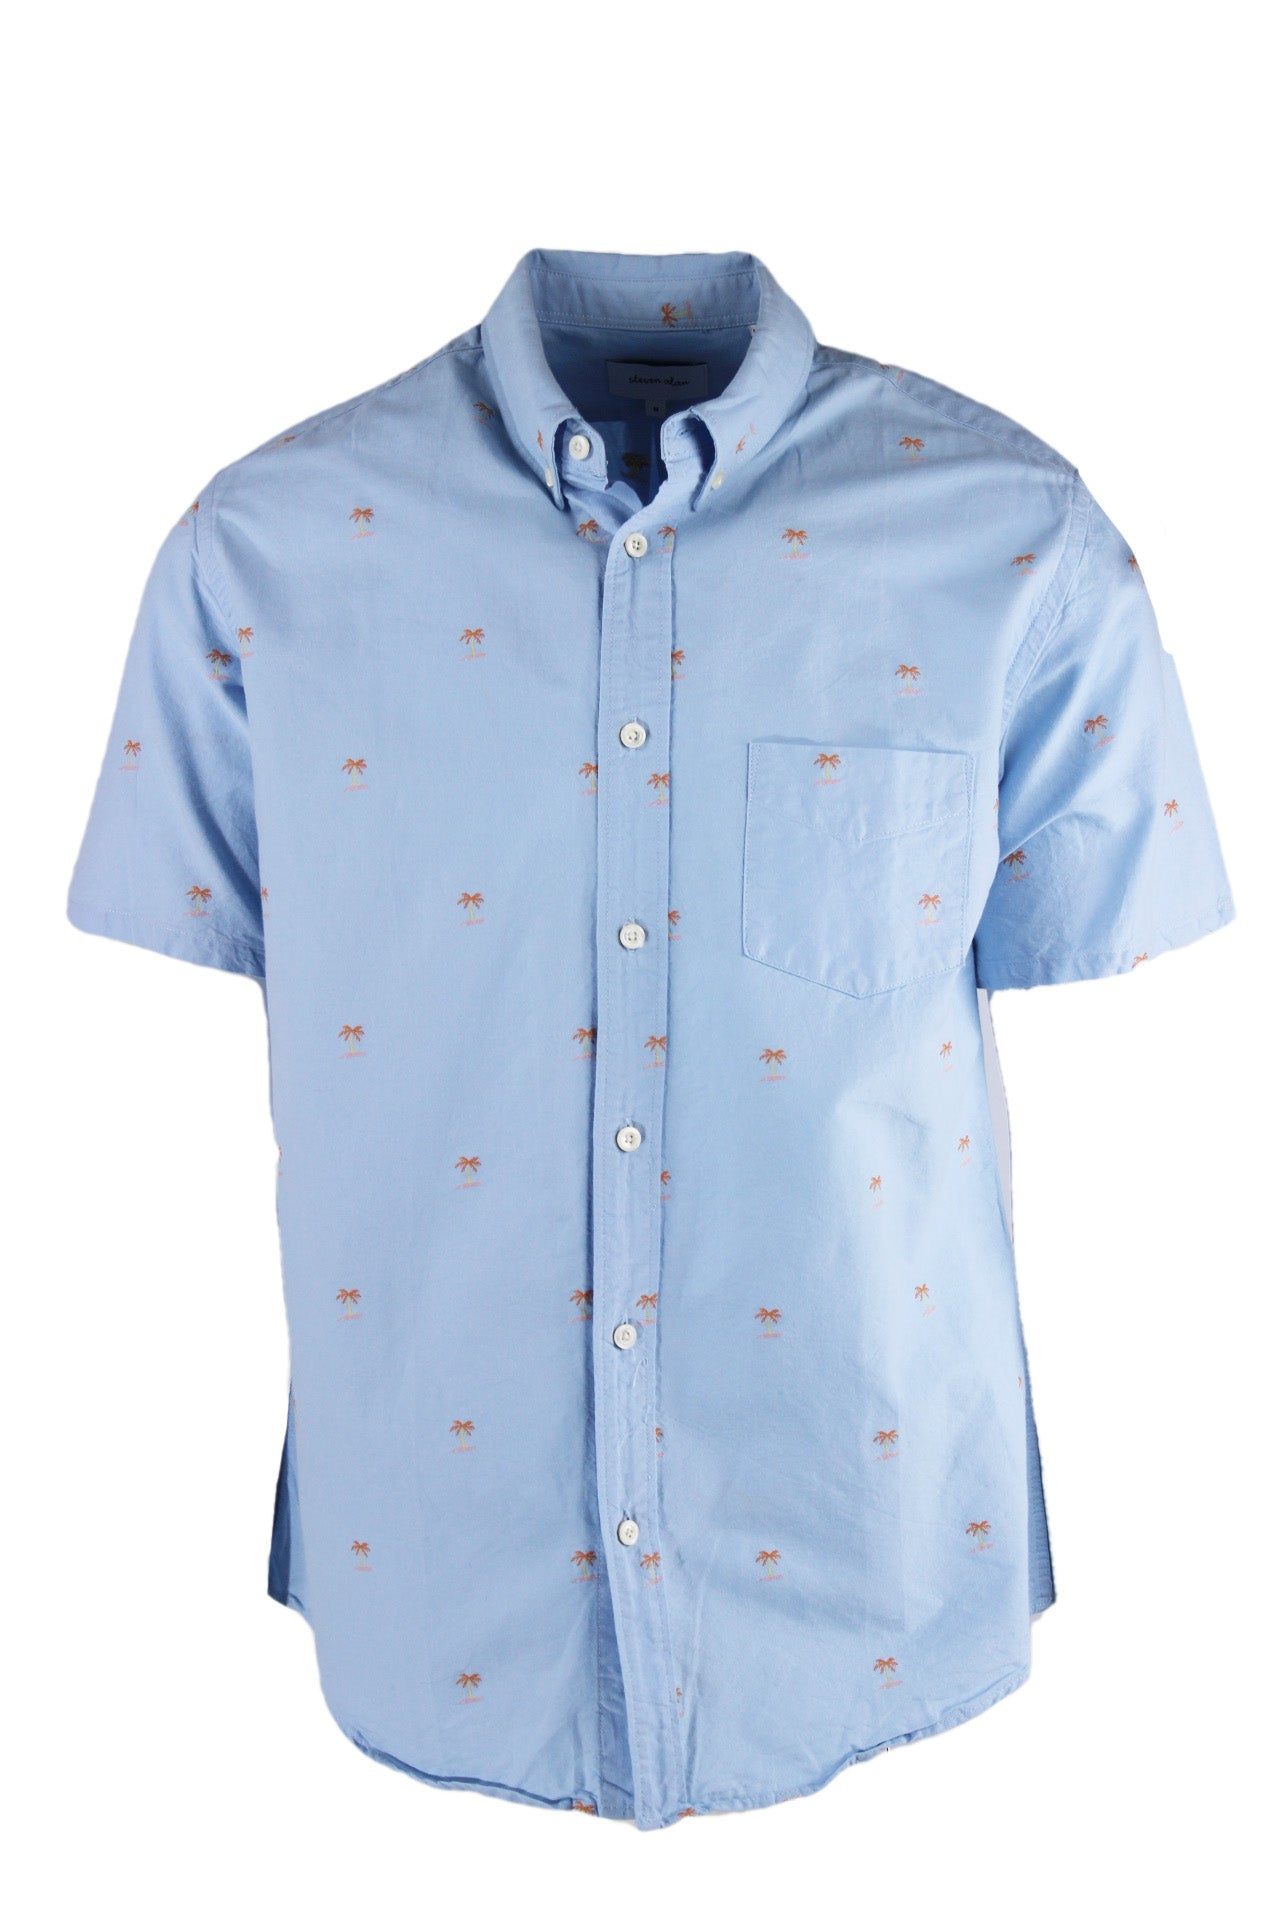 steven alan baby blue palm tree short sleeve button down shirt. features embroidered orange, yellow, and light pink palm tree design throughout. button down collar, chest patch pocket regular cut.